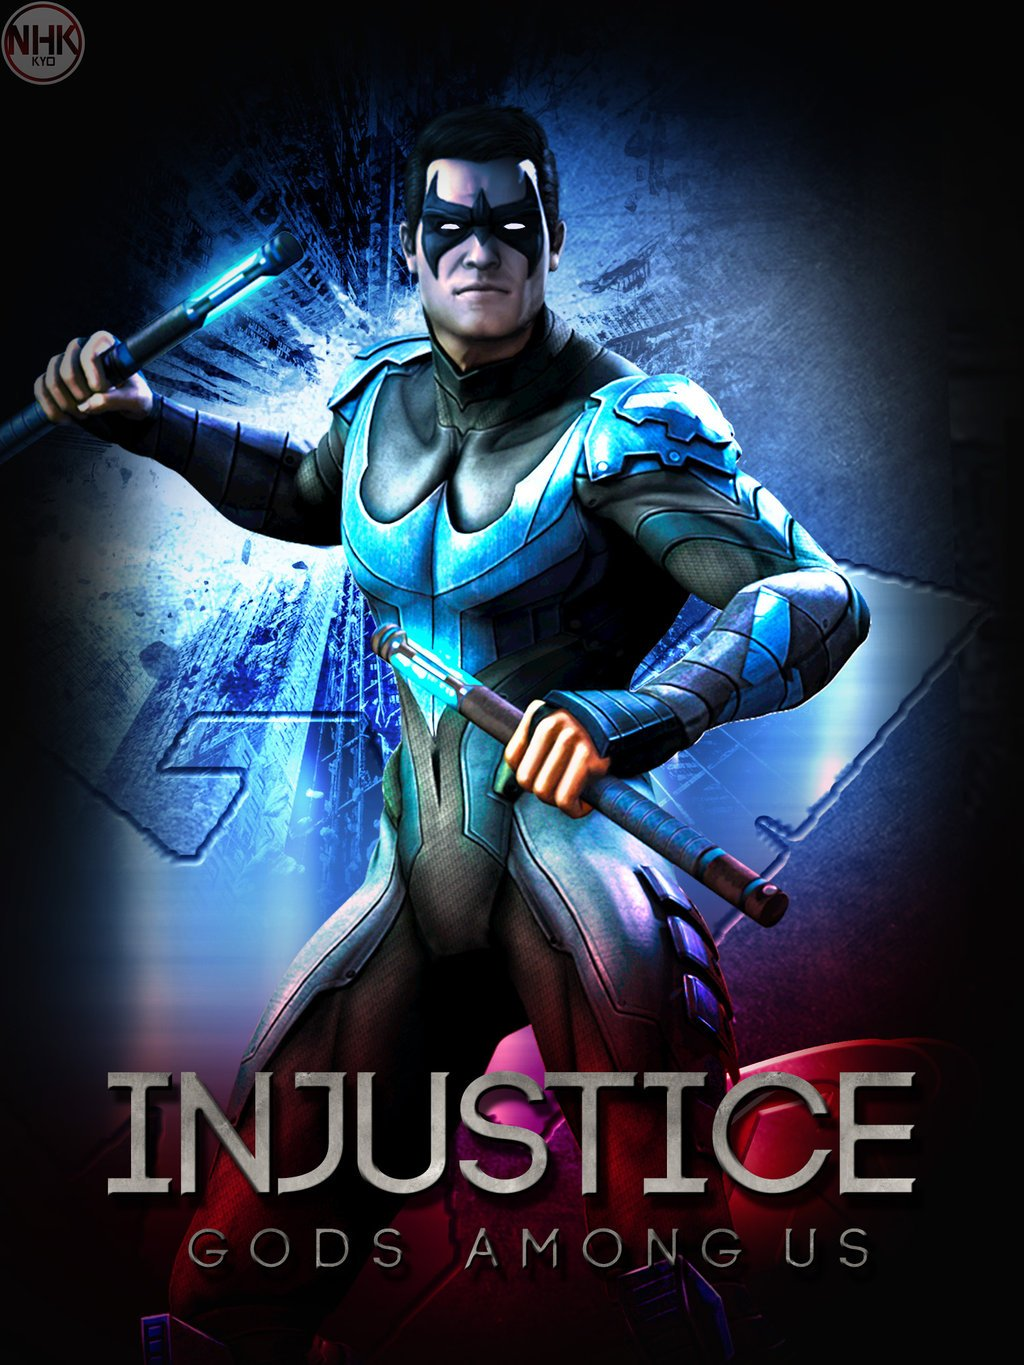 Nightwing Injustice Skins Injustice nightwing poster by 1024x1365